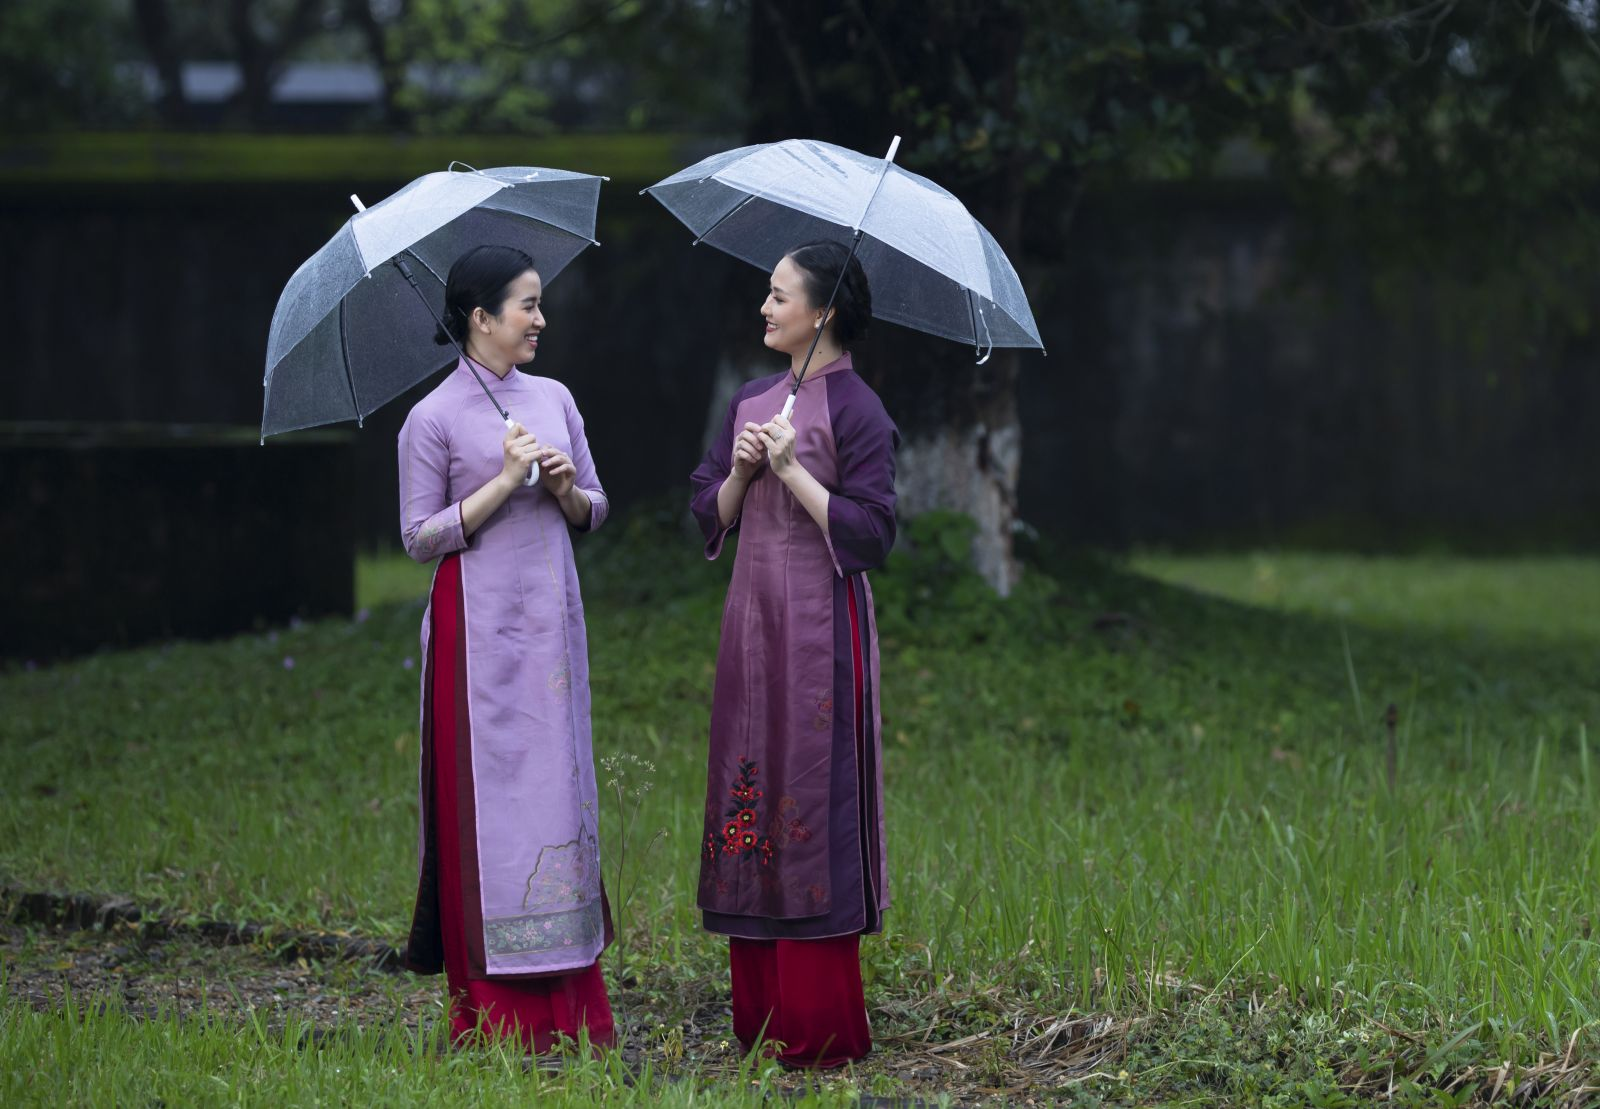 Ao dai of any color can make the wearer very gentle